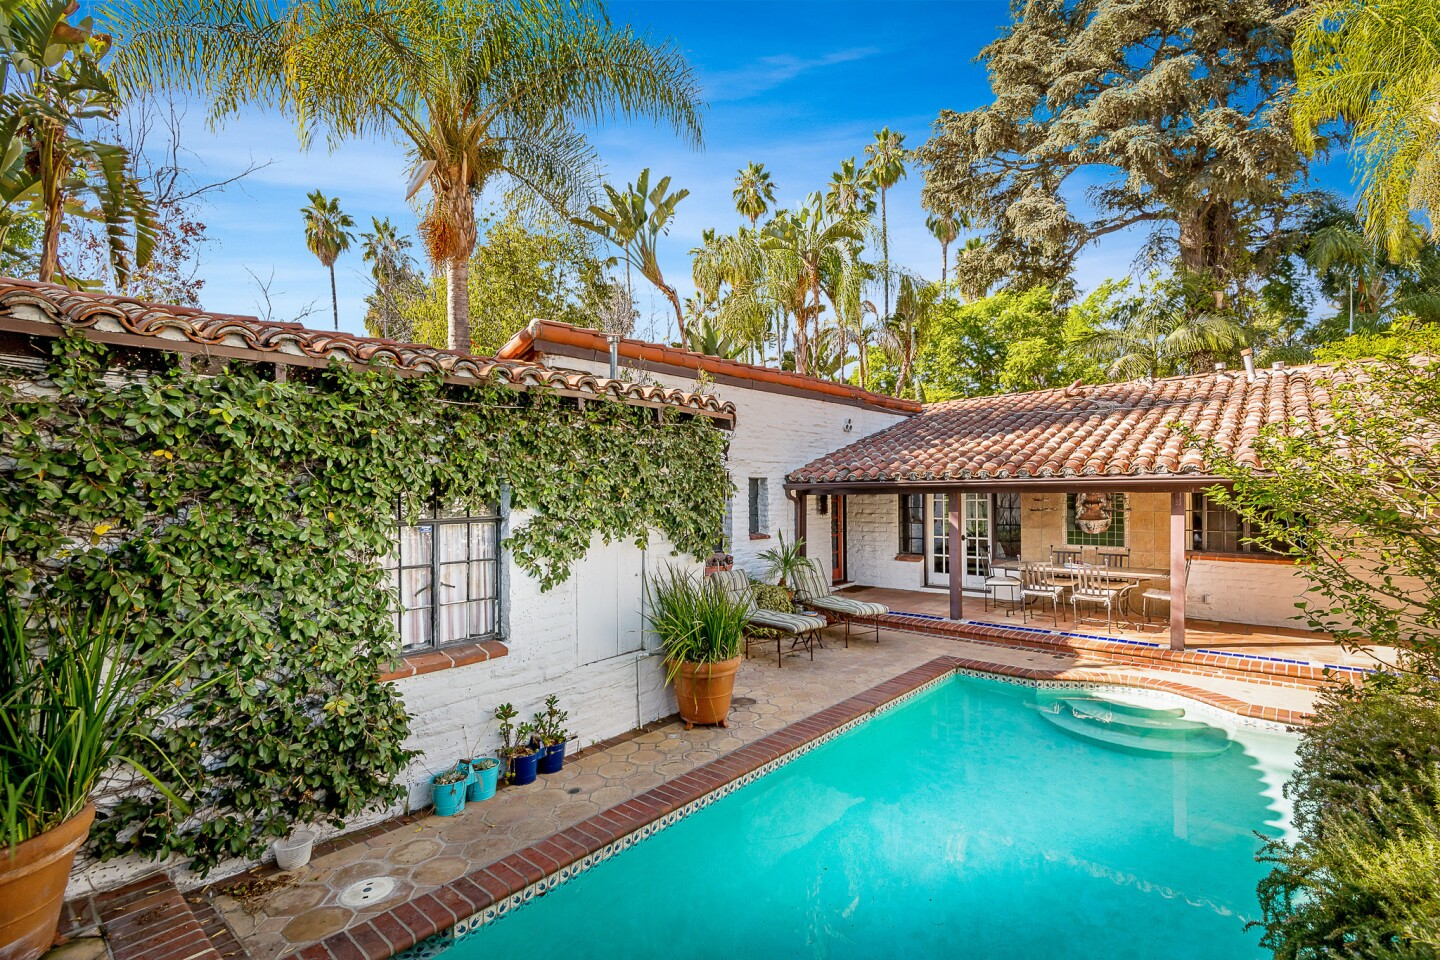 Mae West's onetime home | Hot Property